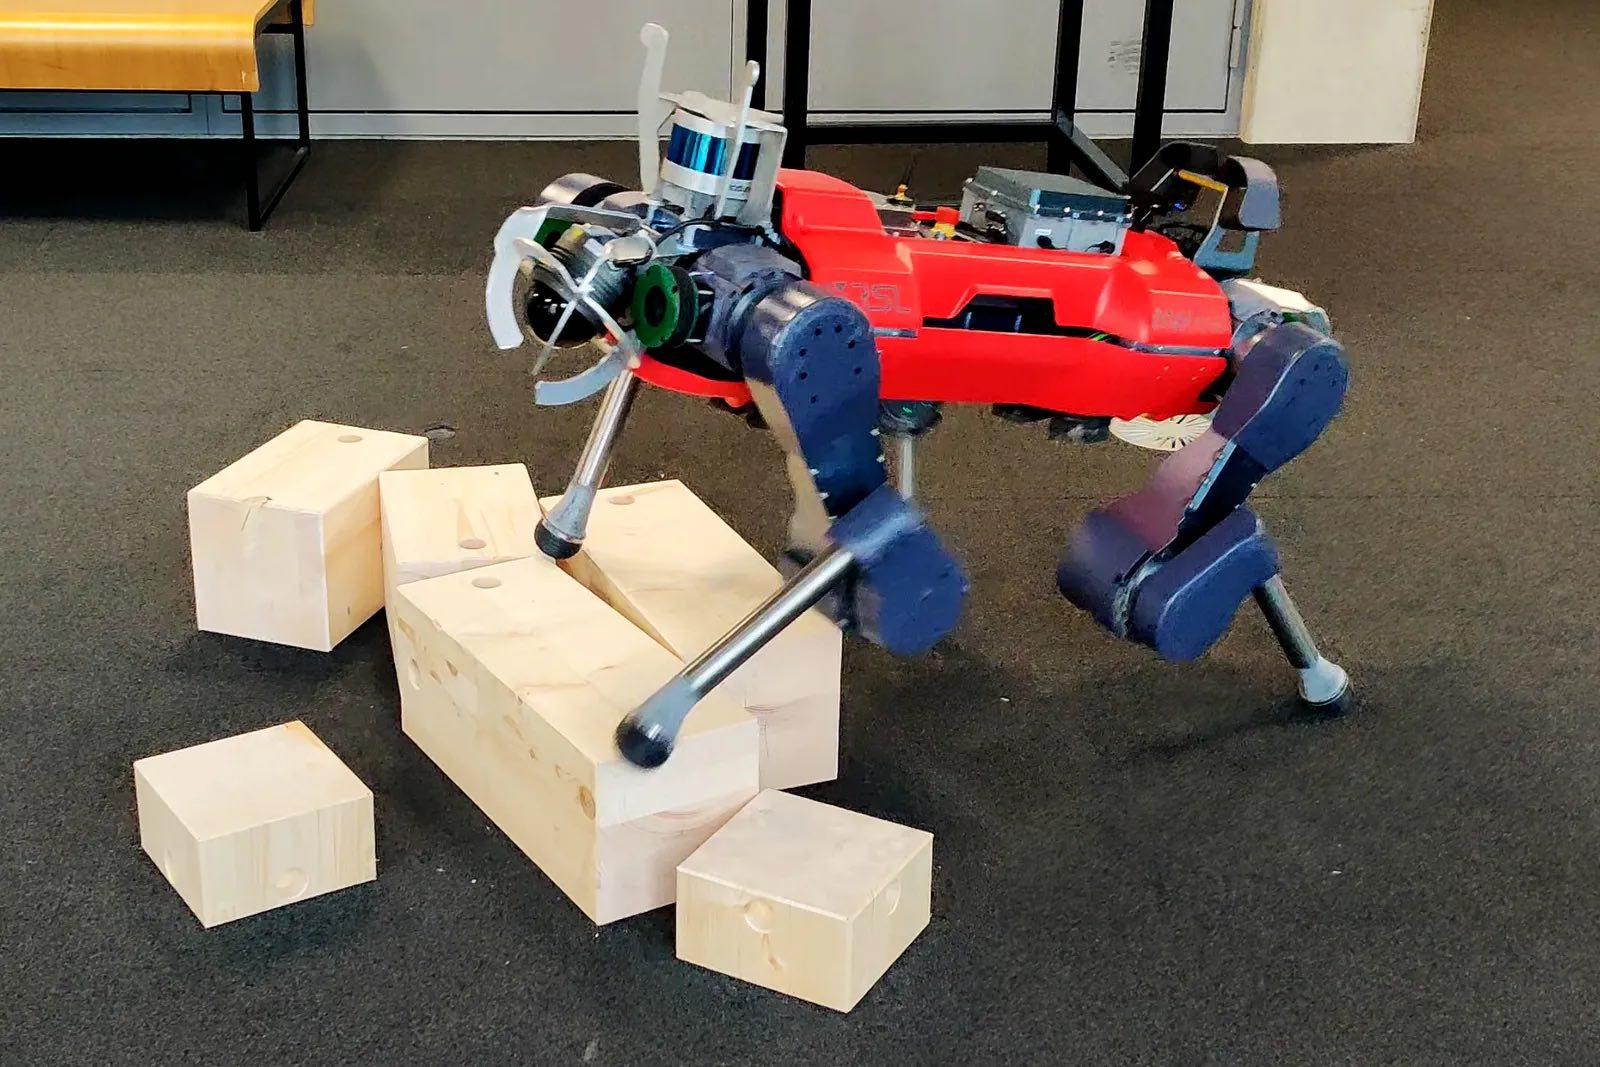 The real ANYmal, a four-legged robot from the Swiss company ANYbotics.